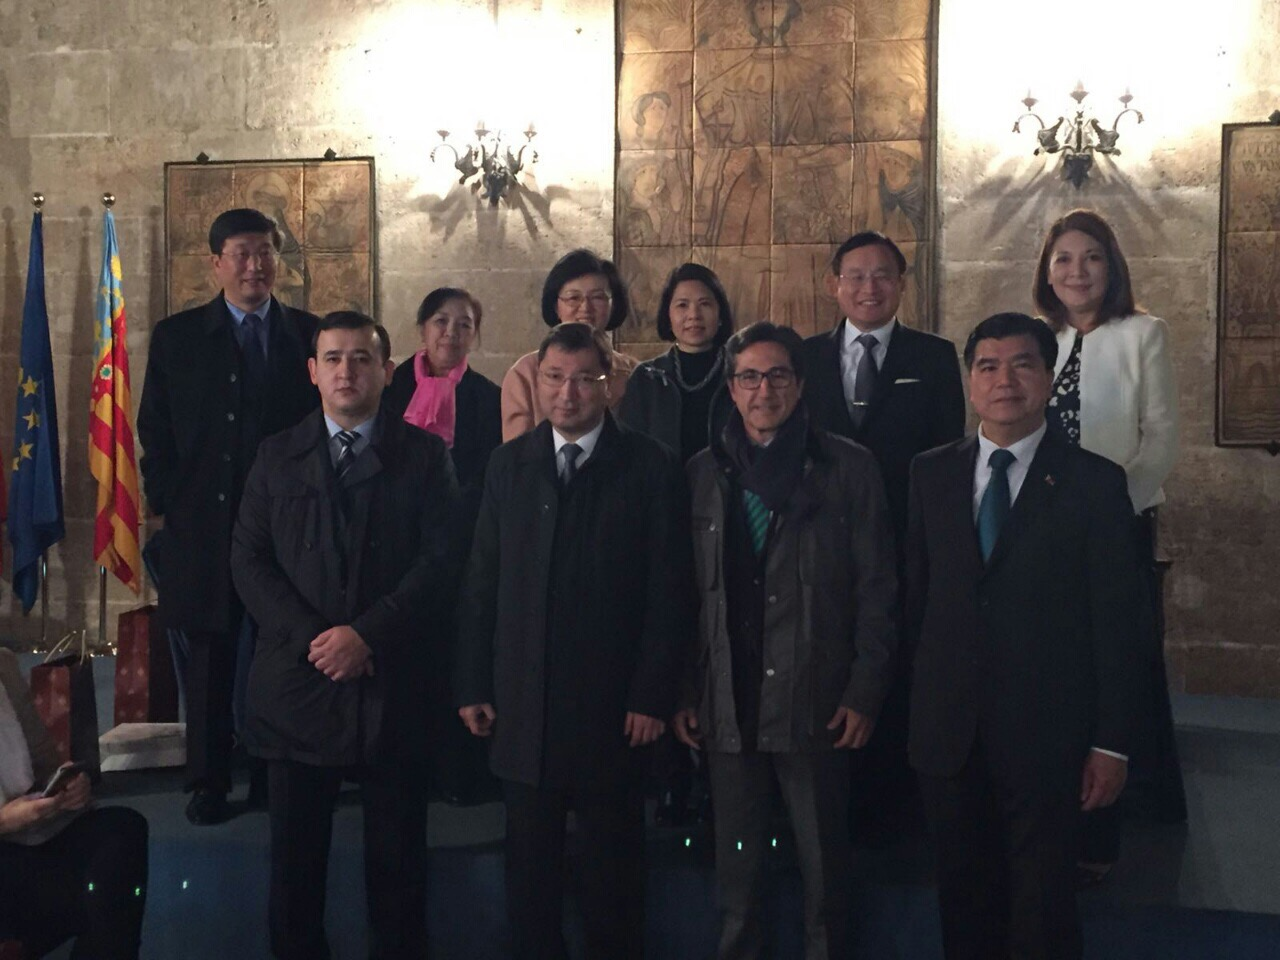 The ASPAC Group at the Valencia City Hall, together with Mr. Jose María Chiquillo (Deputy for Valencia).